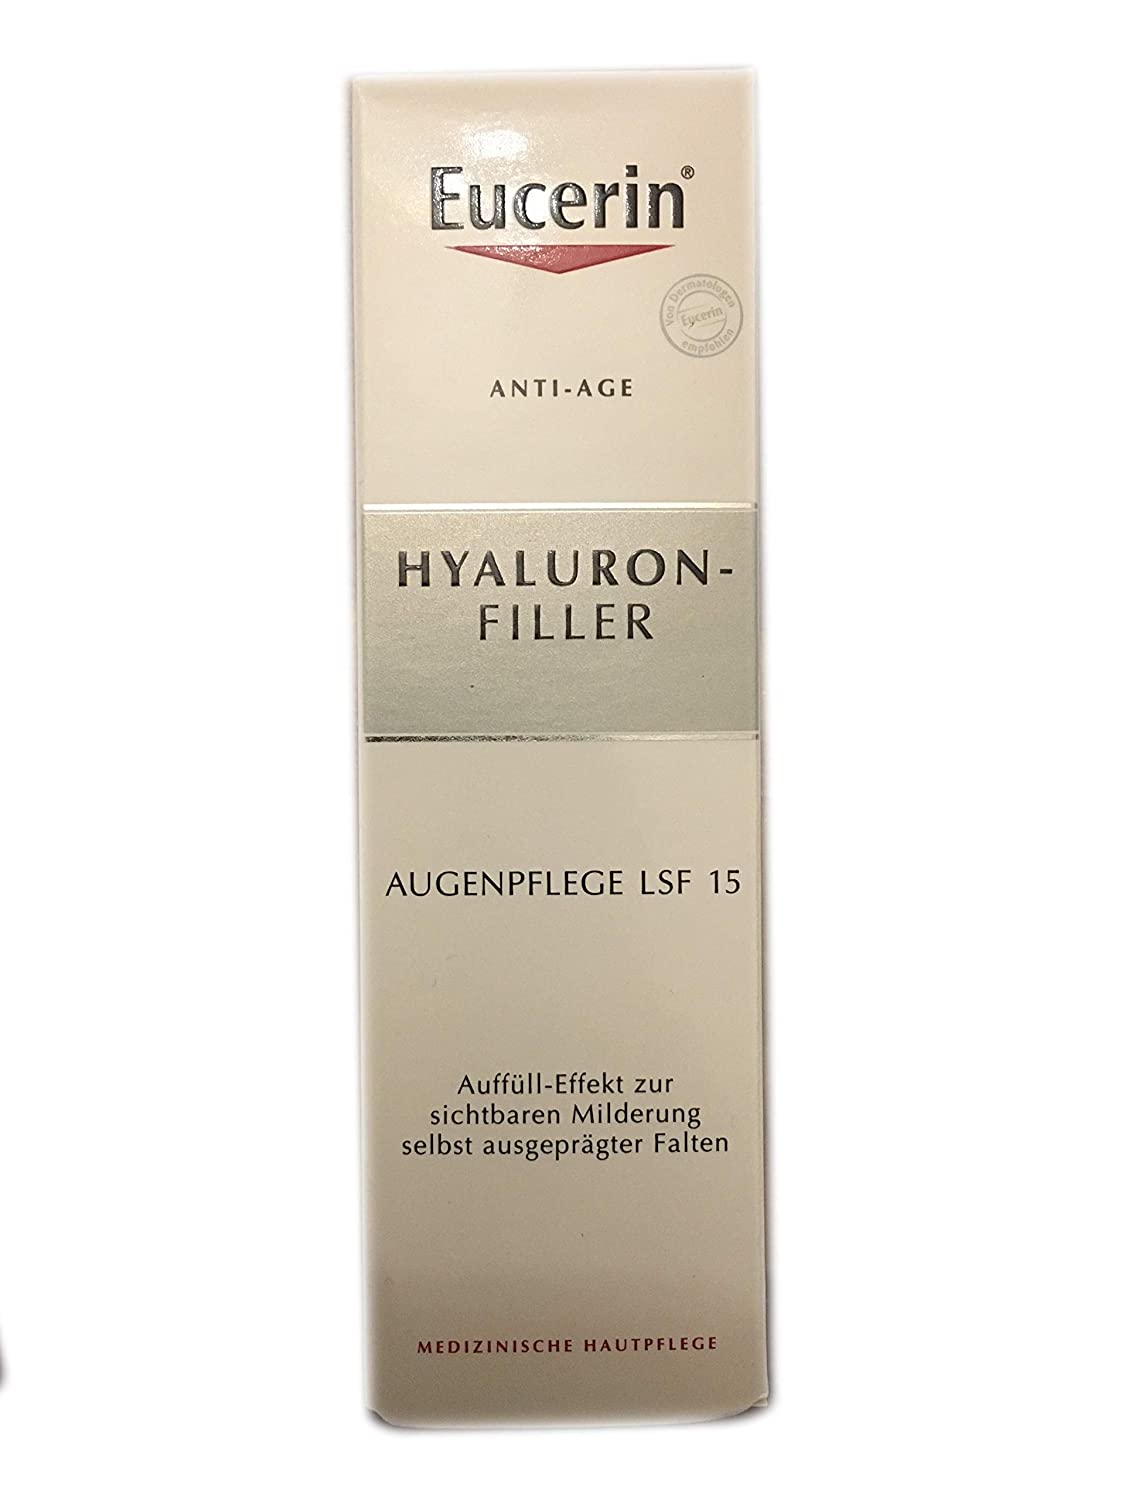 Eucerin Anti Age Hyaluron Elastic Filler Eye & Lip Cream Advanced Firm & Lift 15ml